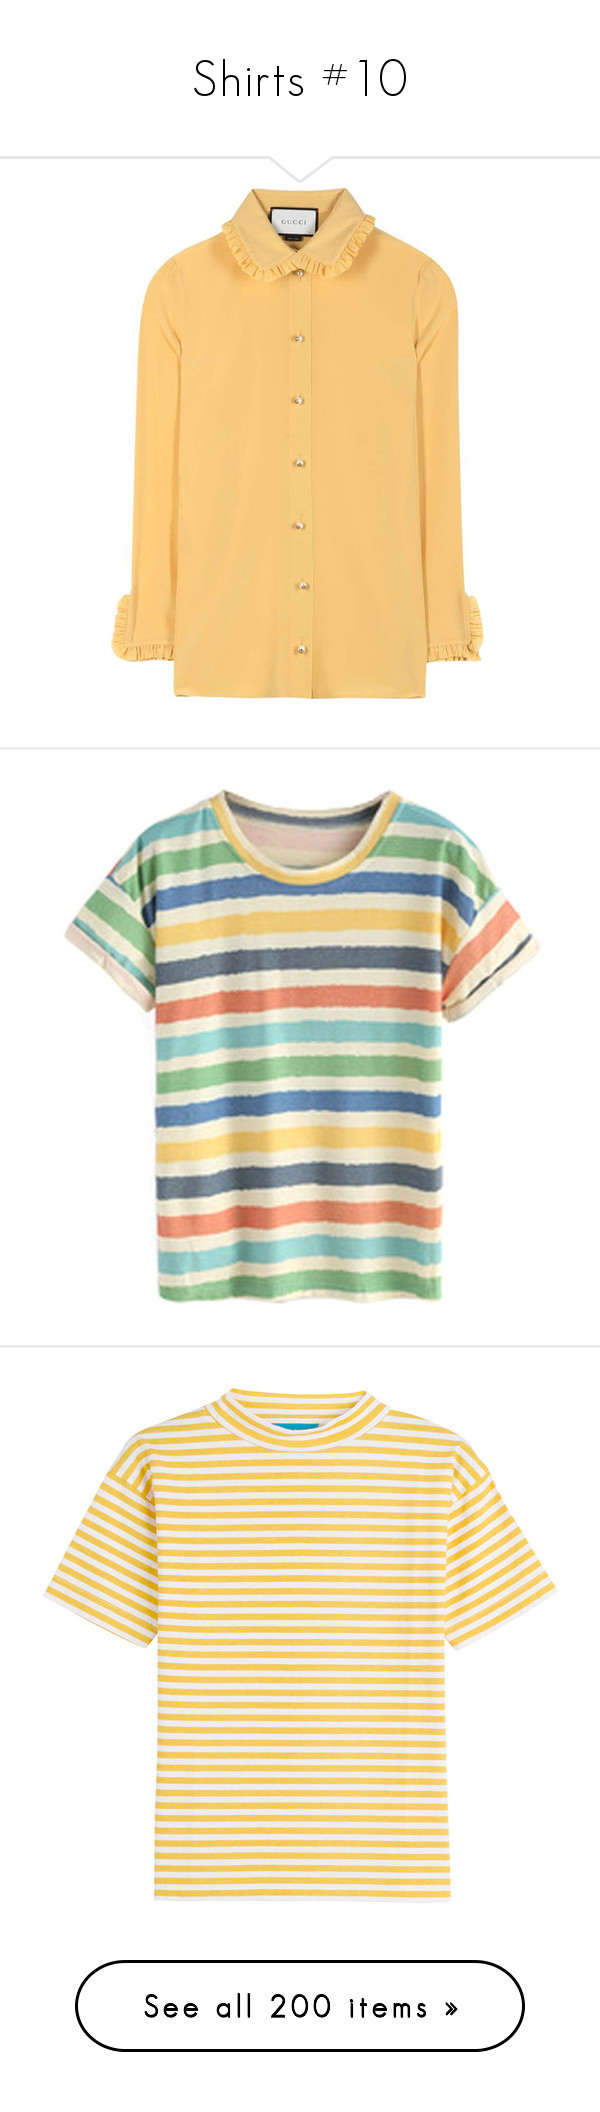 """""""Shirts #10"""" by banana-lee ❤ liked on Polyvore featuring tops, blouses, gucci, yellow, silk blouse, yellow ruffle blouse, yellow ruffle top, yellow top, t-shirts and striped tee"""